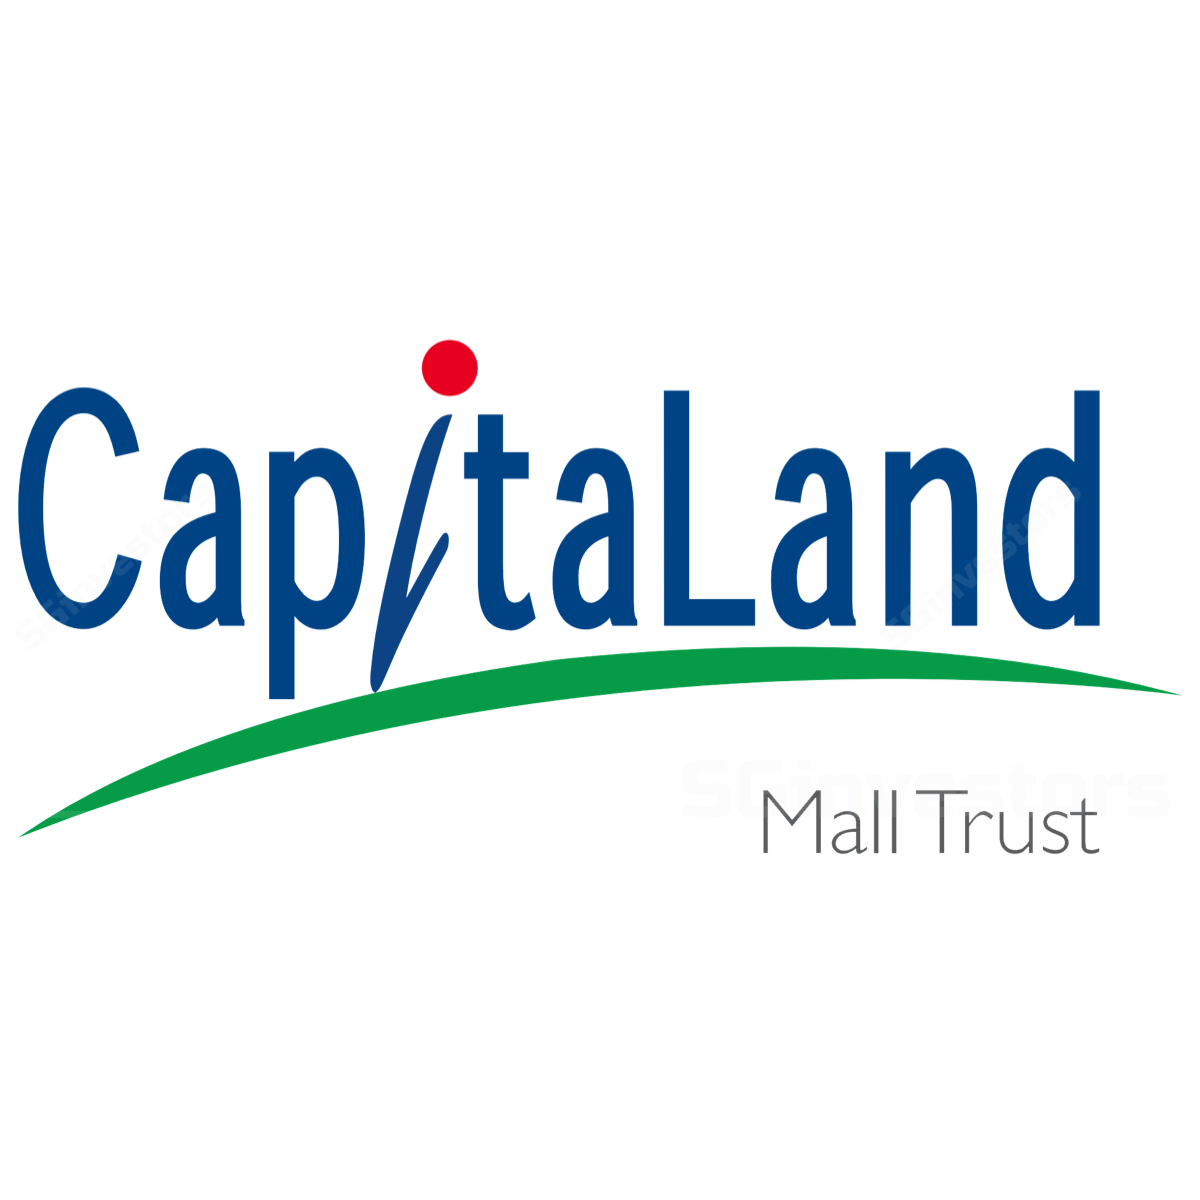 CapitaLand Mall Trust - Phillip Securities Research 2018-08-29: Entrenching Presence In The Jurong Lake District